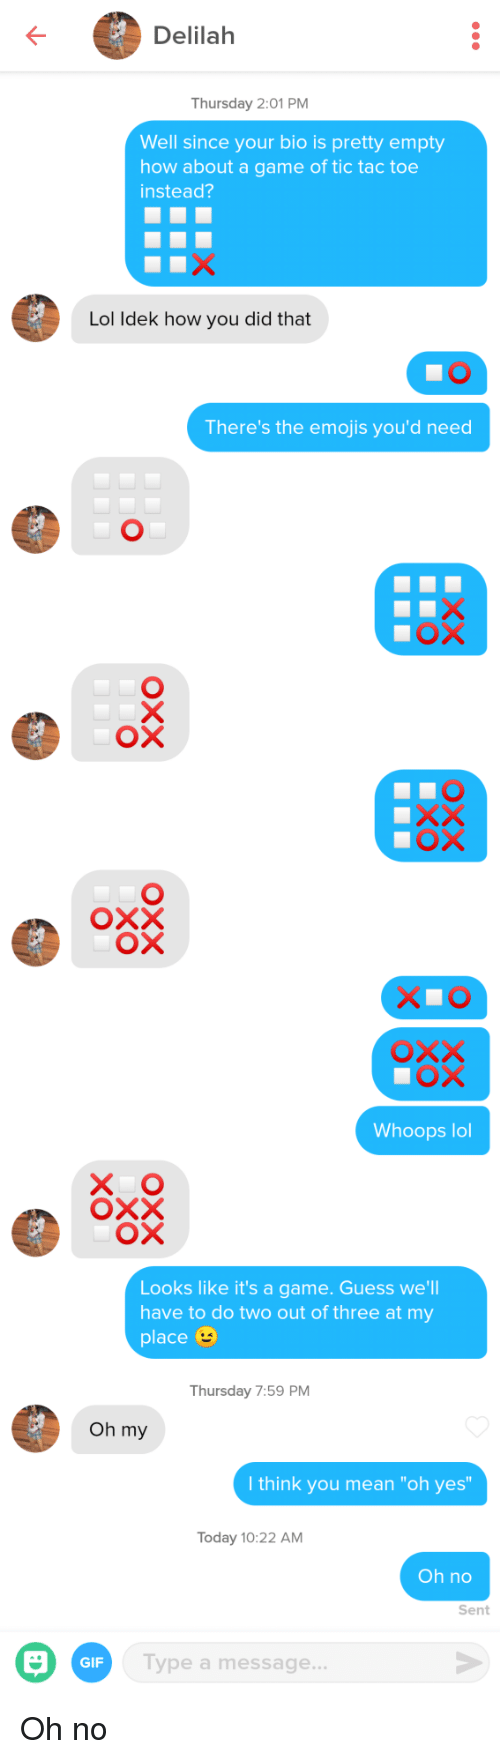 """whoops: Delilah  Thursday 2:01 PM  Well since your bio is pretty empty  how about a game of tic tac toe  instead?  Lol ldek how you did that  There's the emojis you'd need  ох  Whoops lol  X O  Looks like it's a game. Guess we'll  have to do two out of three at my  place  Thursday 7:59 PM  Oh my  I think you mean """"oh yes  Today 10:22 AM  Oh no  Sent  GIF  Type a message Oh no"""